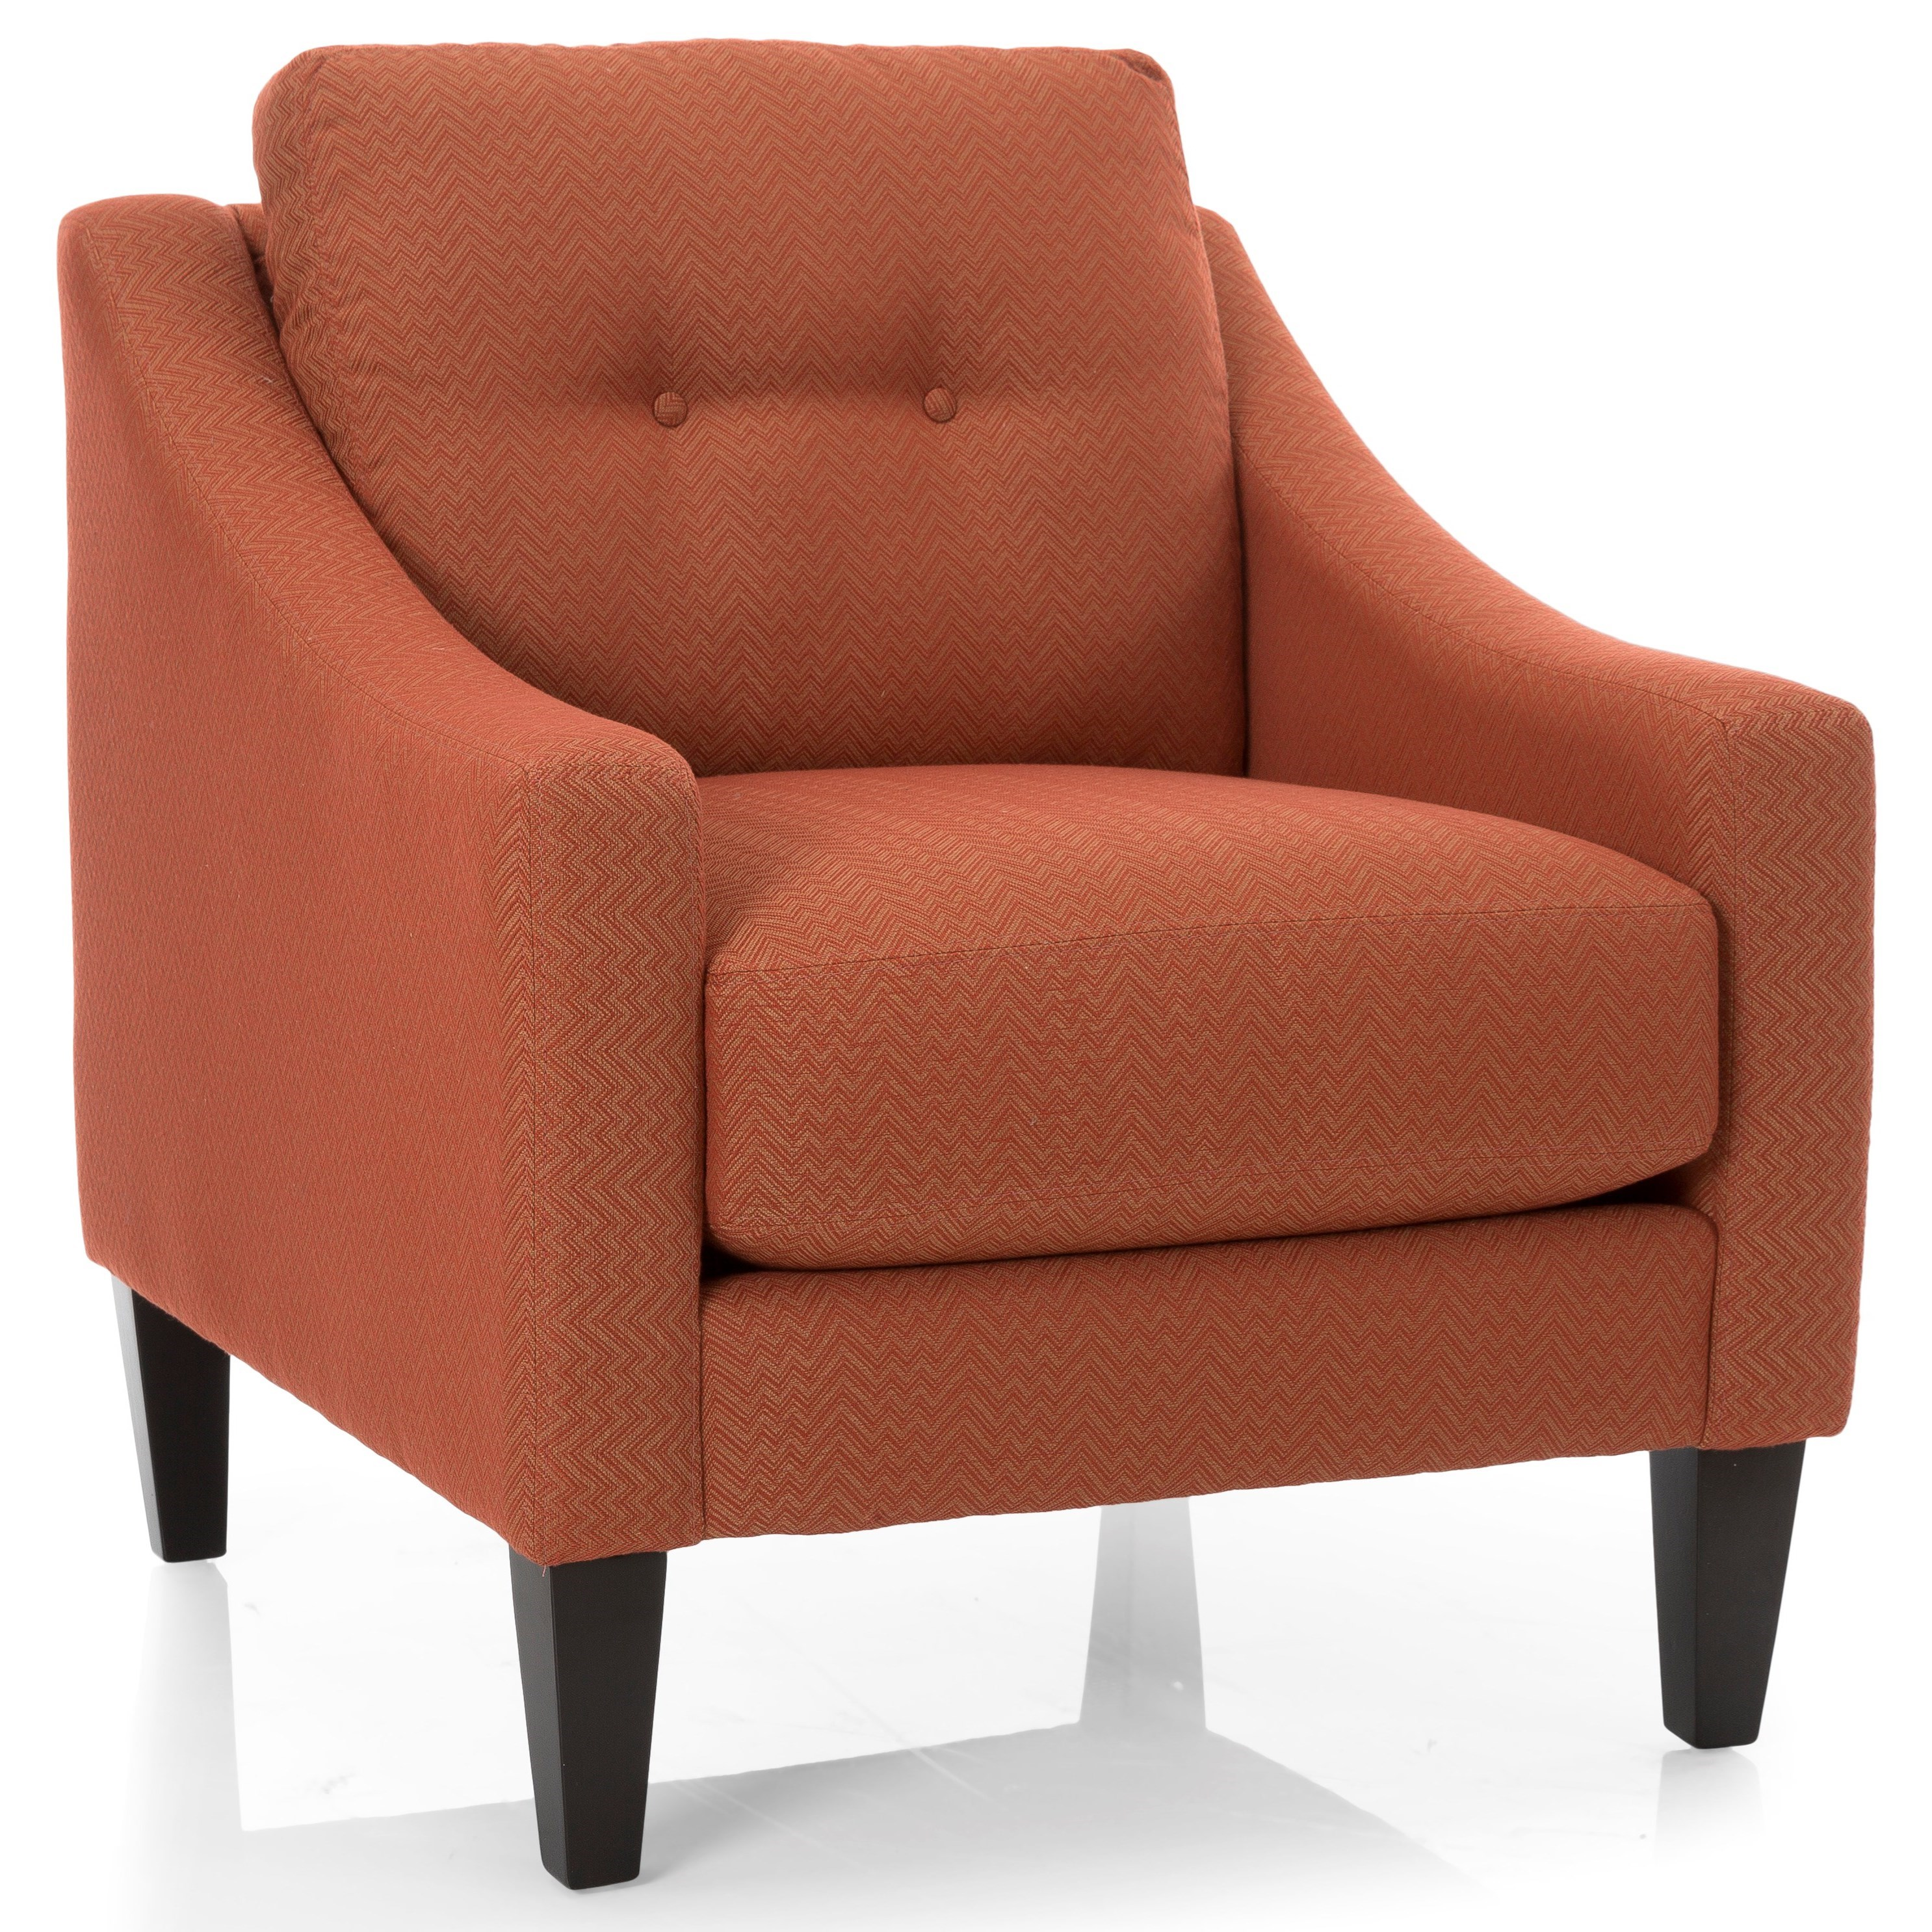 2467 Accent Chair by Decor-Rest at Stoney Creek Furniture